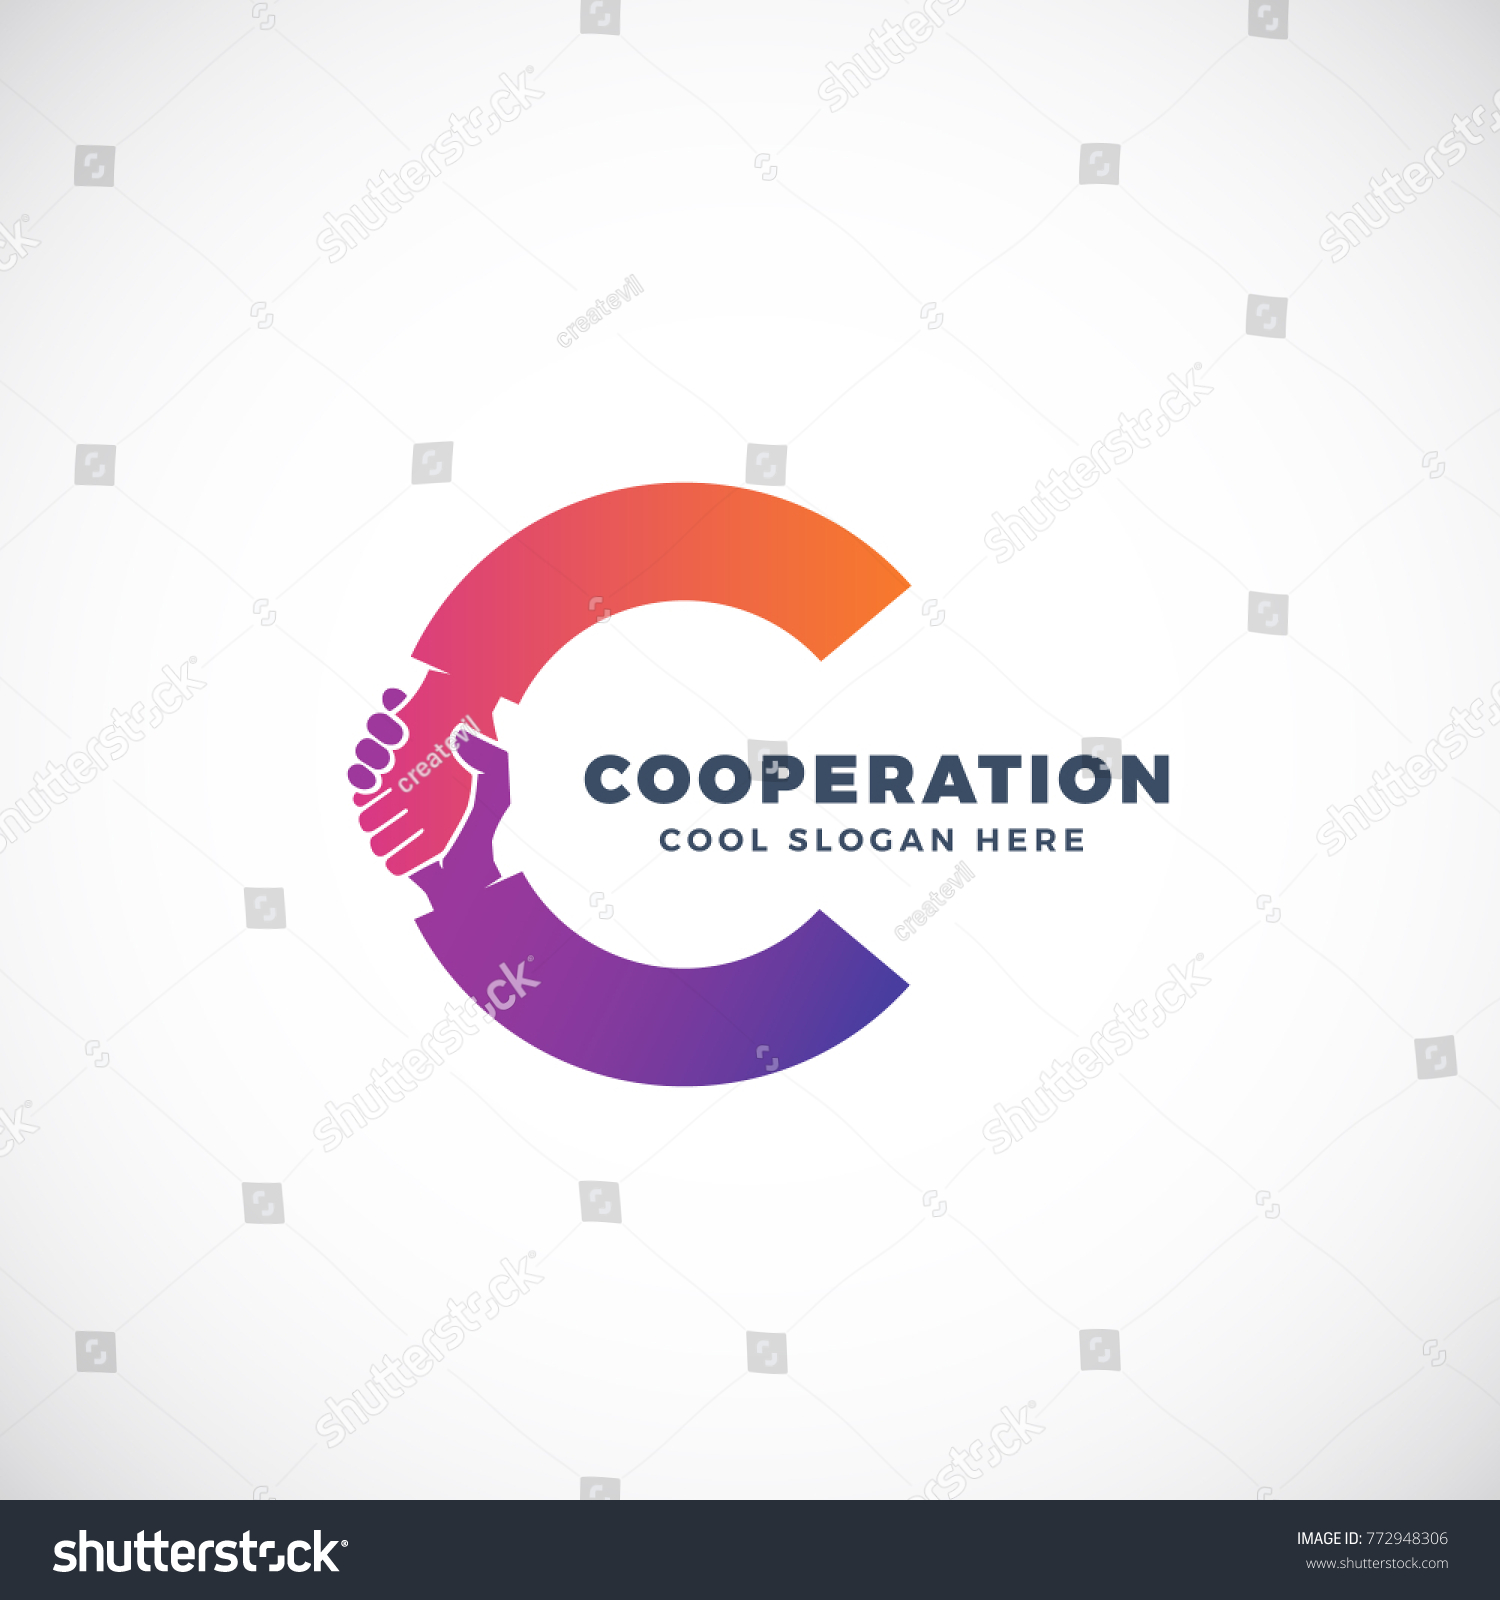 cooperation abstract sign symbol logo templateのイラスト素材